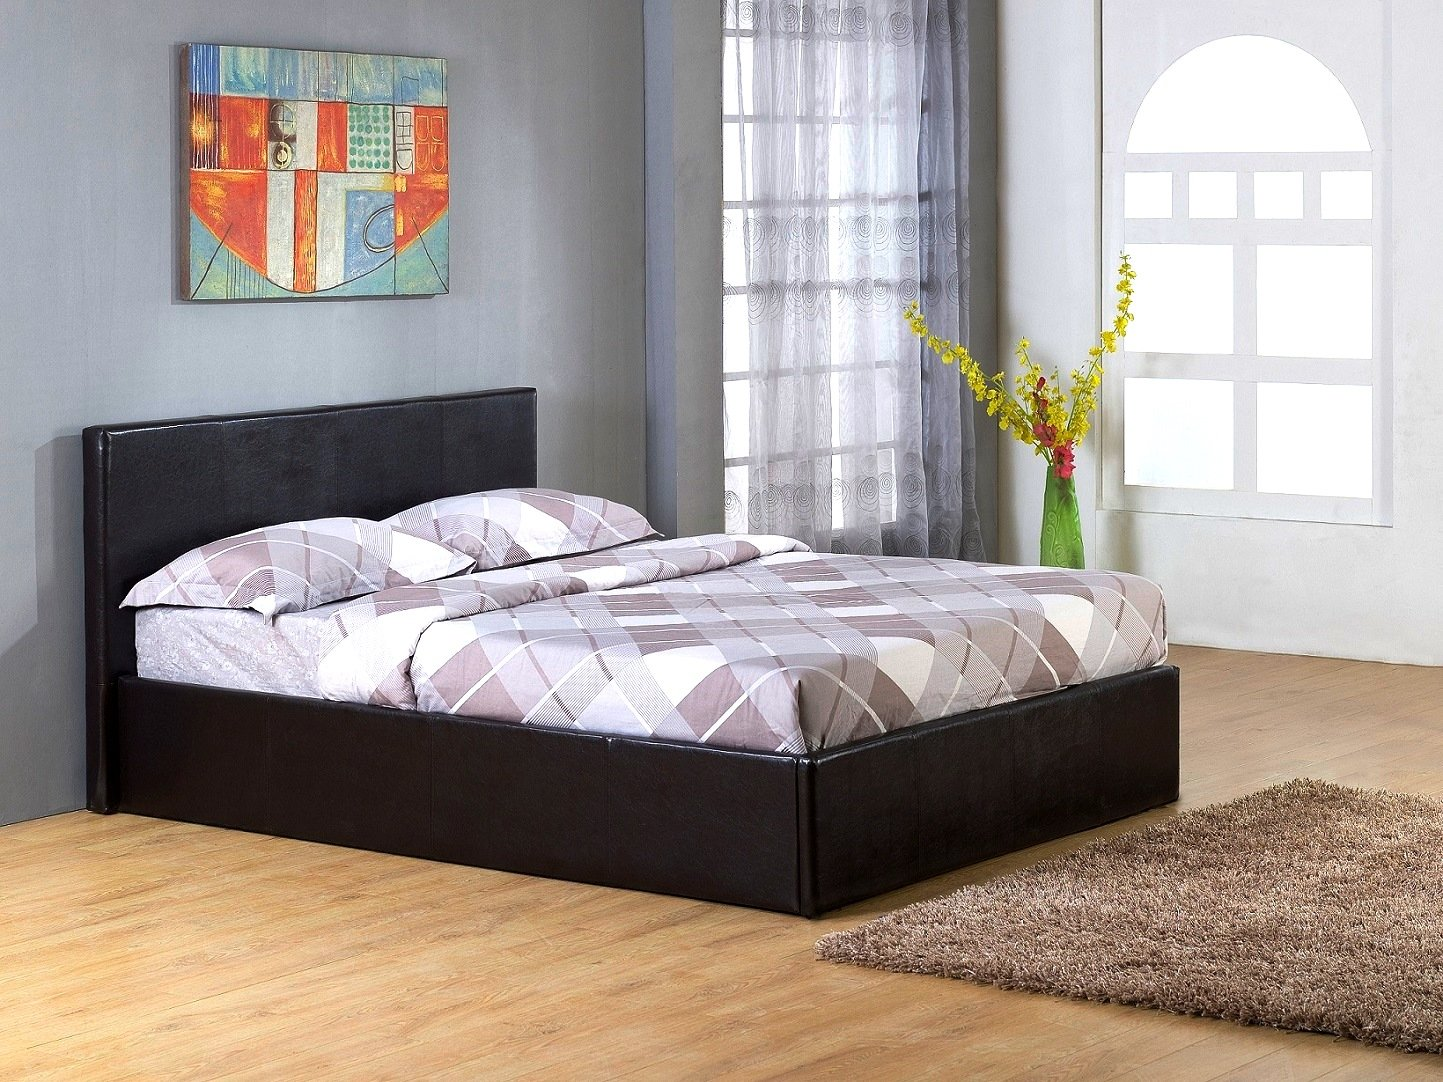 pdp bed dps main john buyjohn online king com lewis johnlewis size rsp at frame bedstead white wilton